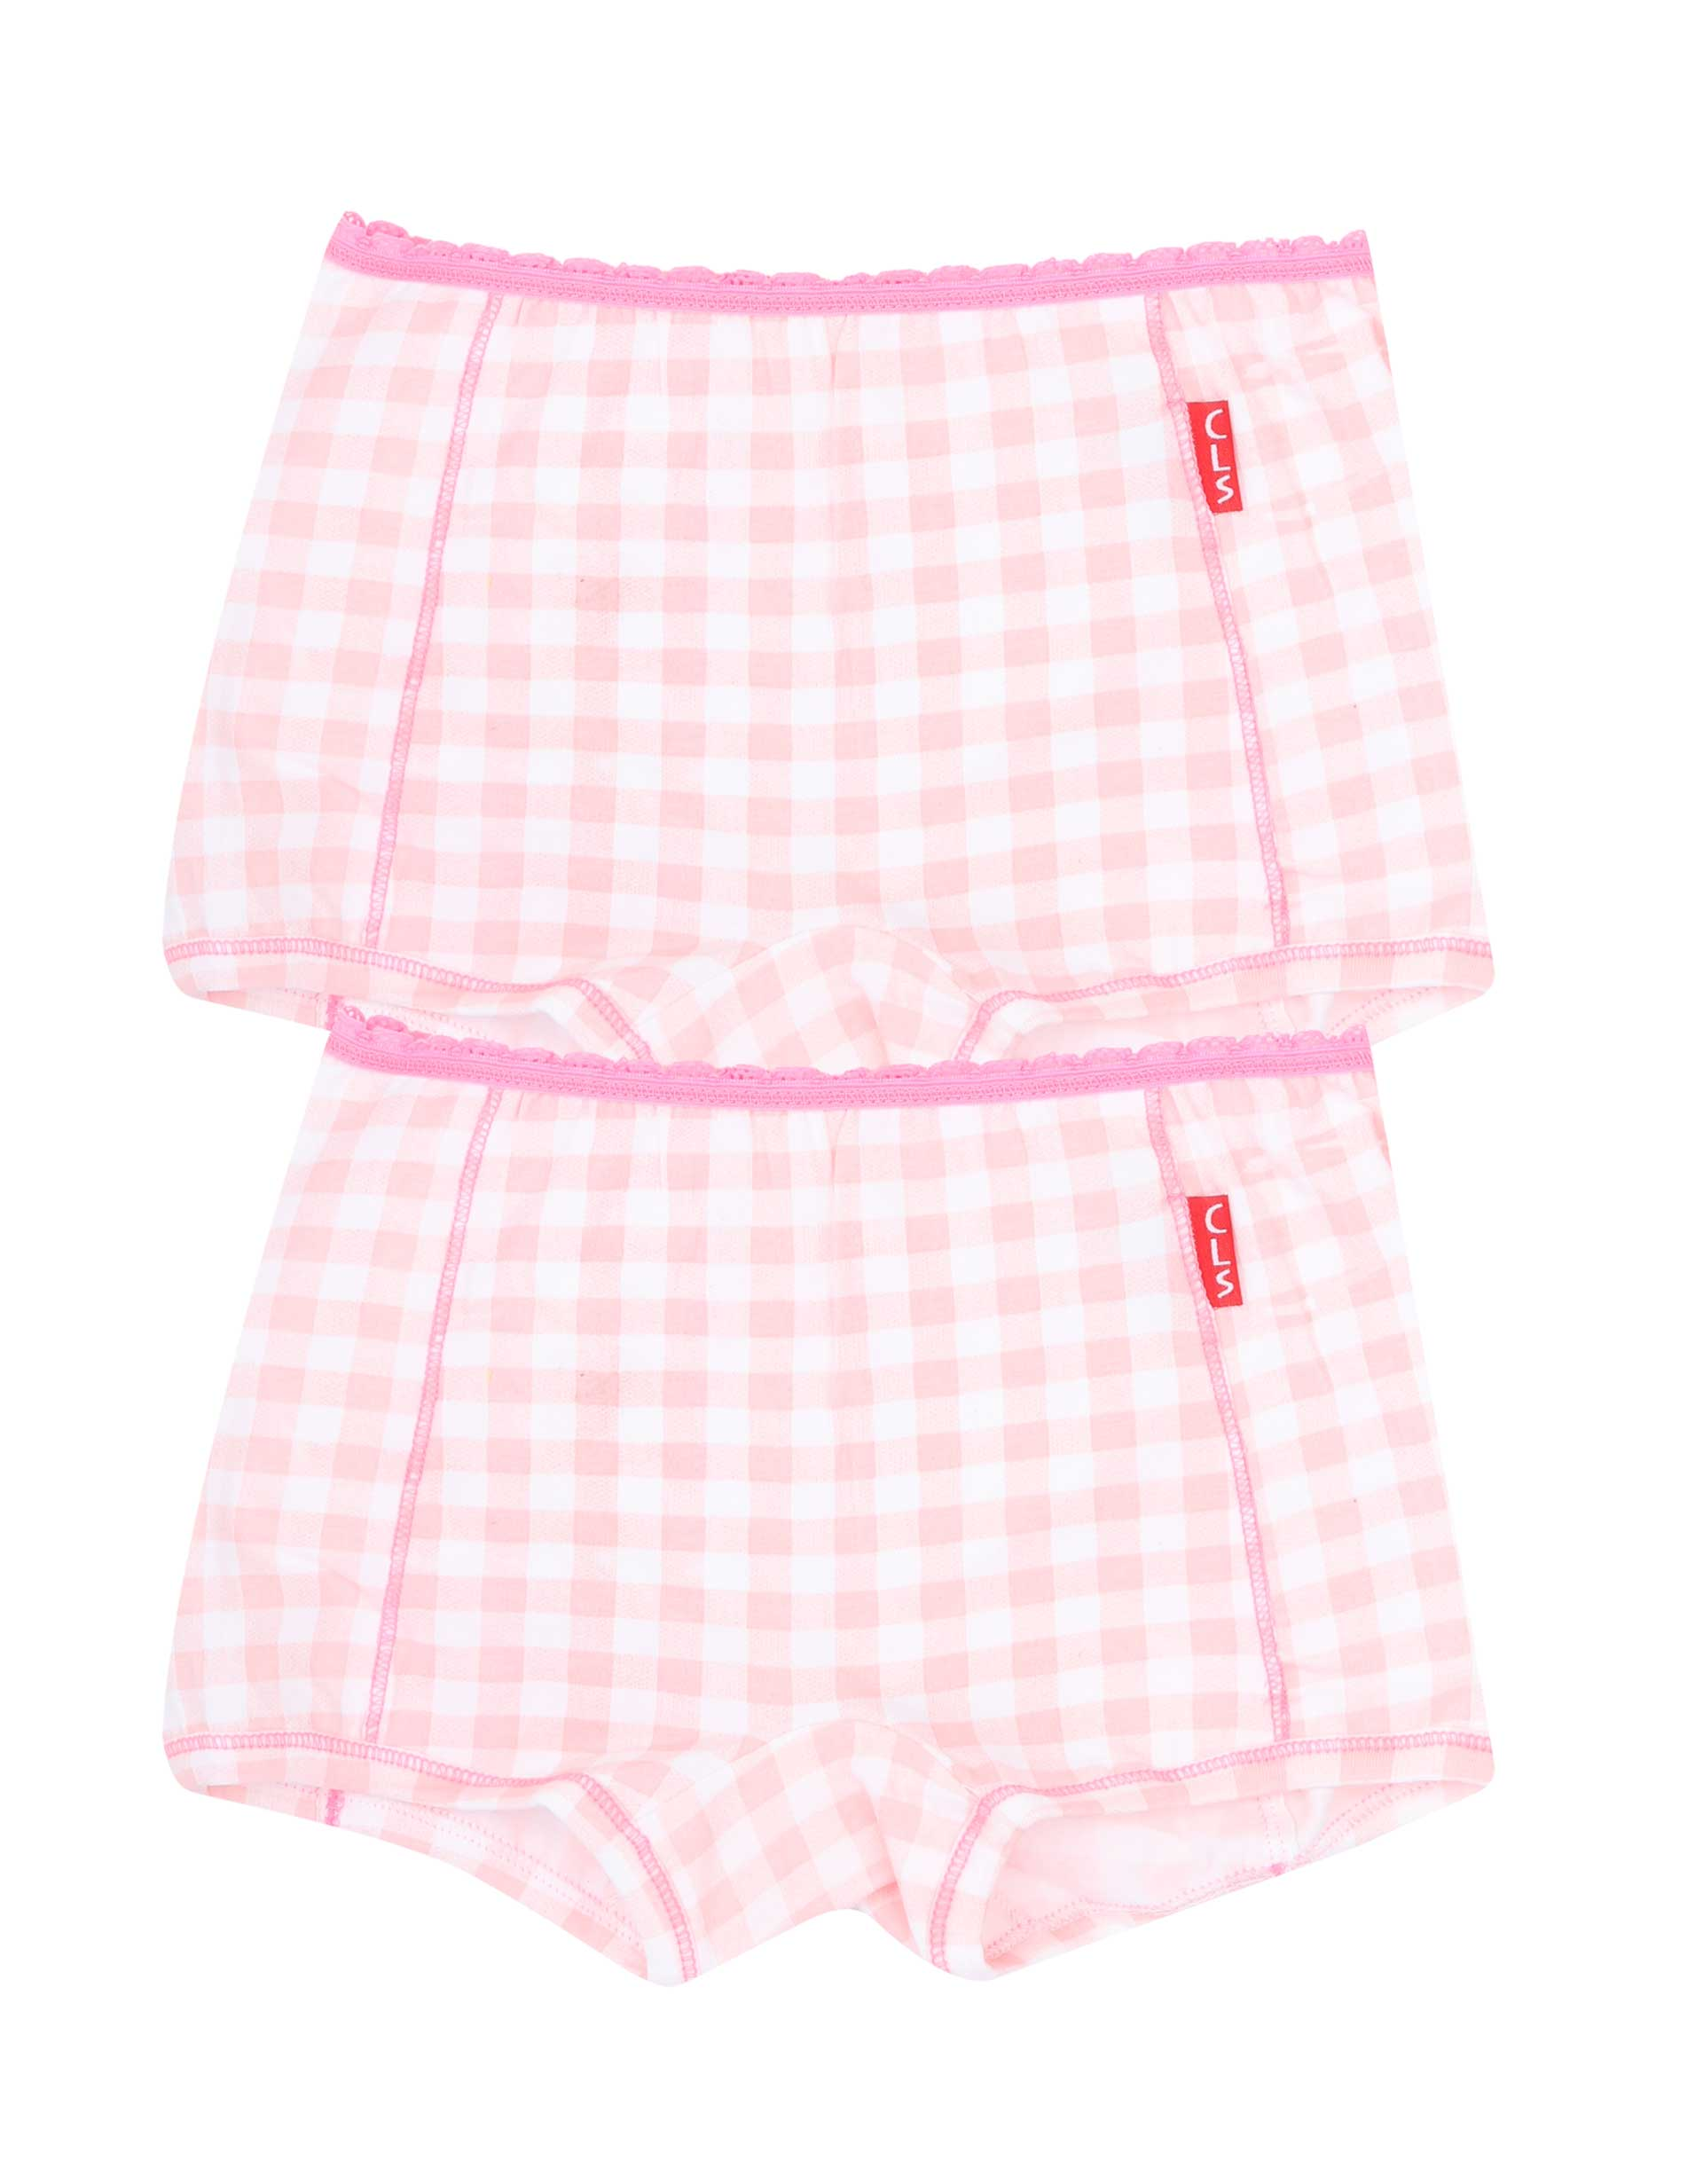 Boxershorts 2-pack Pink Checks